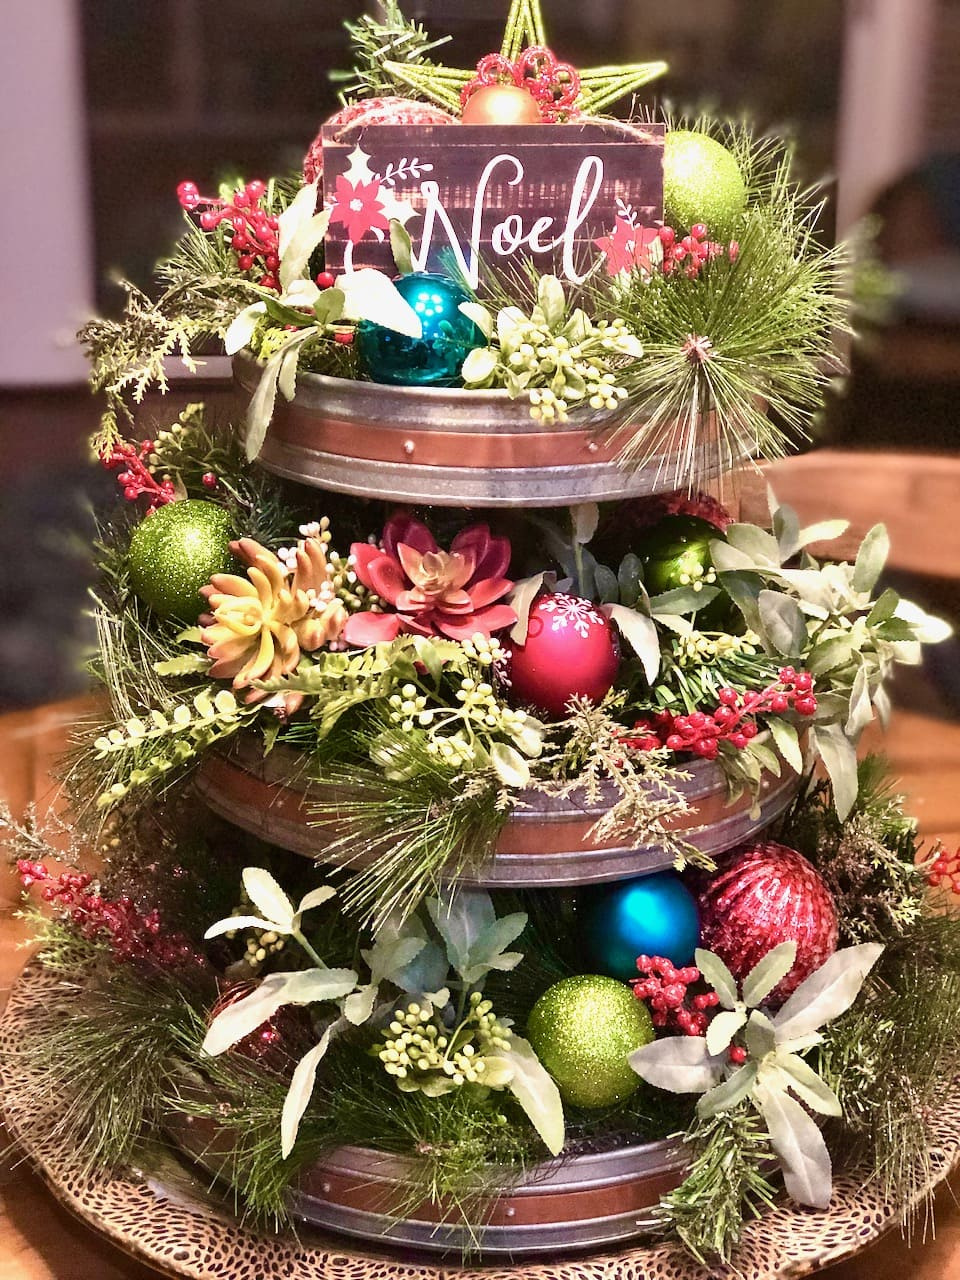 galvanized tier decorated with balls and greenery for a southern Christmas.